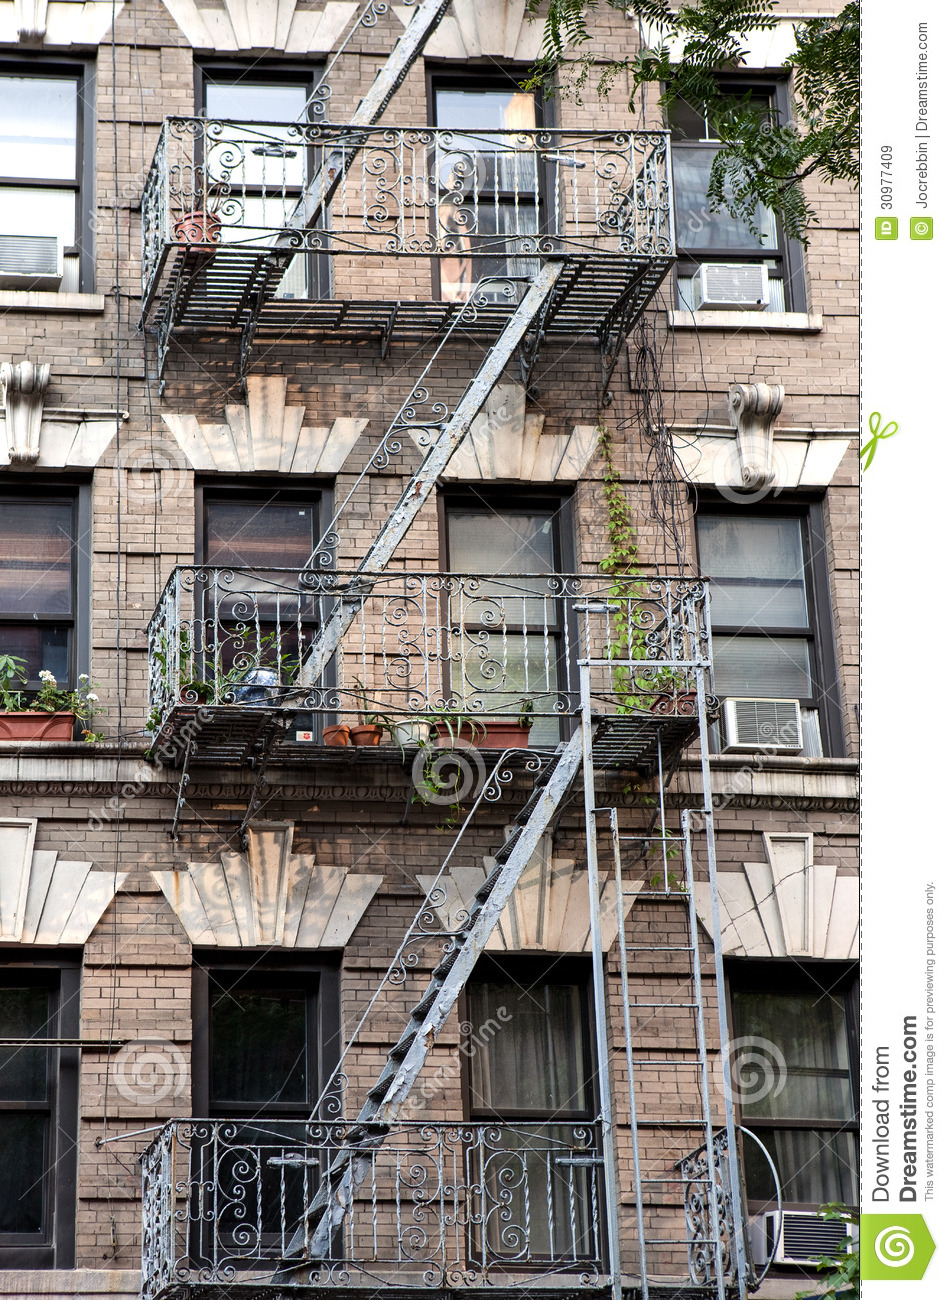 New York City Village Apartment Building With Plants On